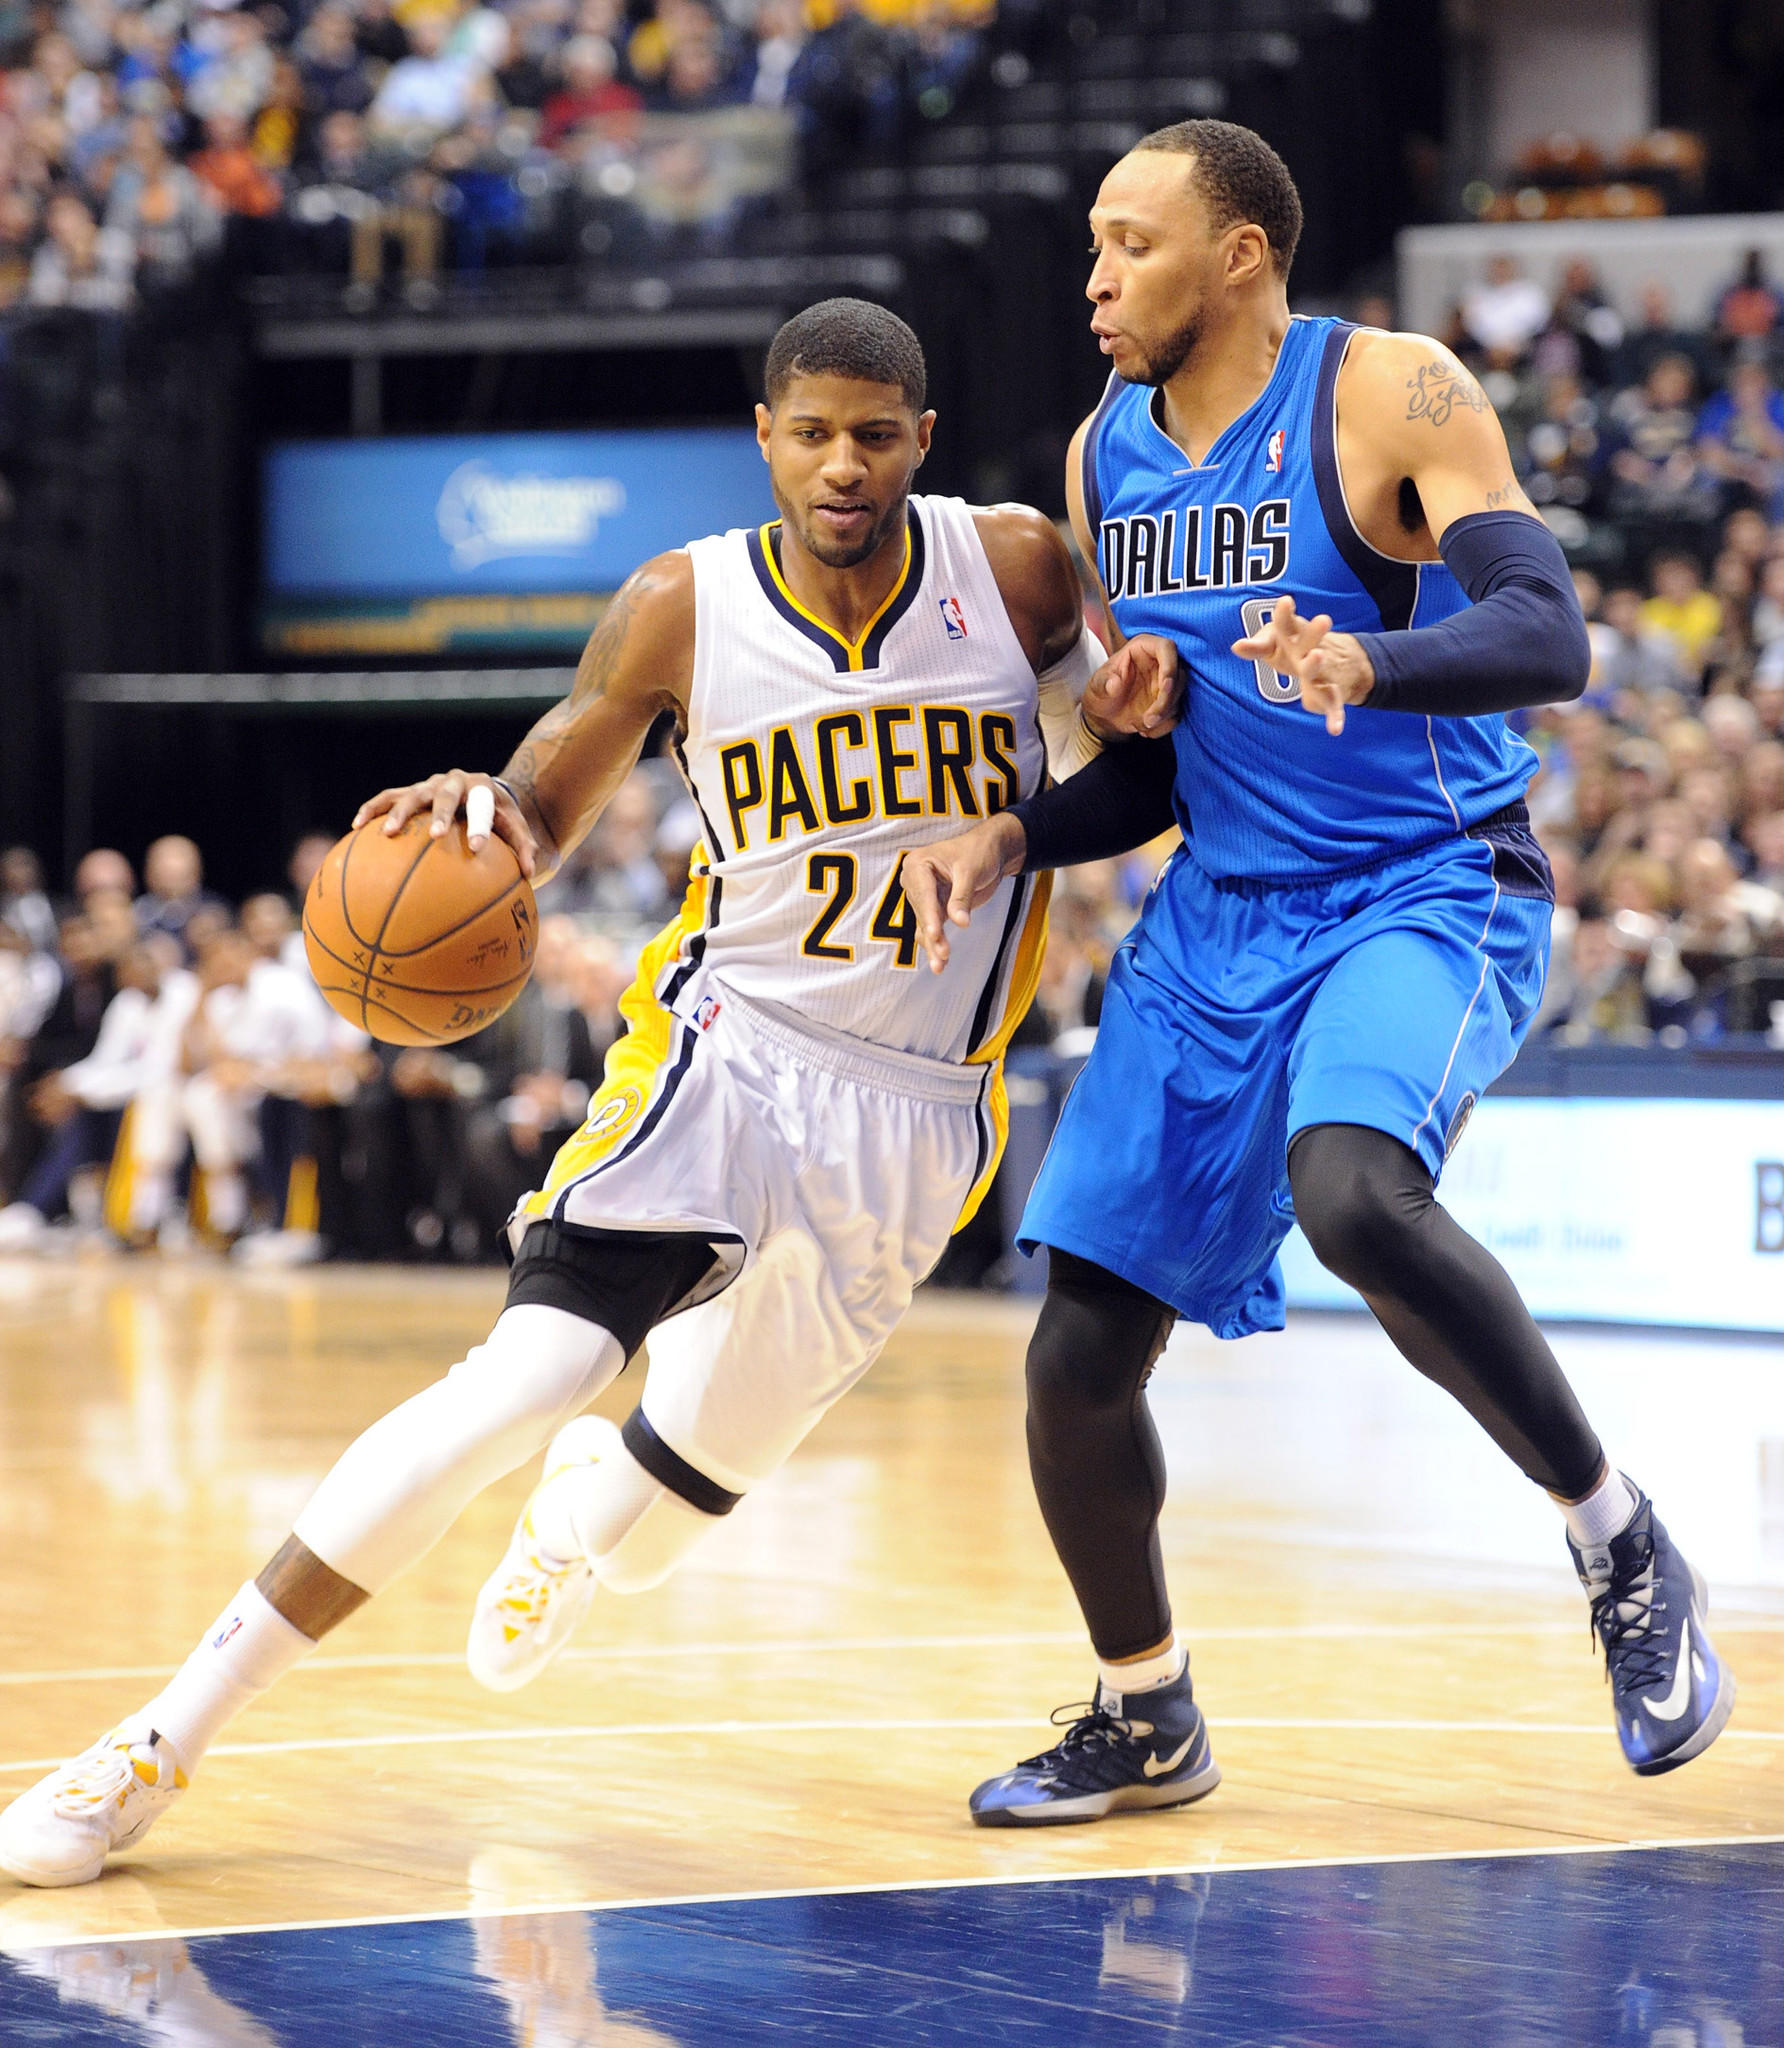 Indiana Pacers guard Paul George (24) drives against Dallas Mavericks forward Shawn Marion (0) at Bankers Life Fieldhouse.